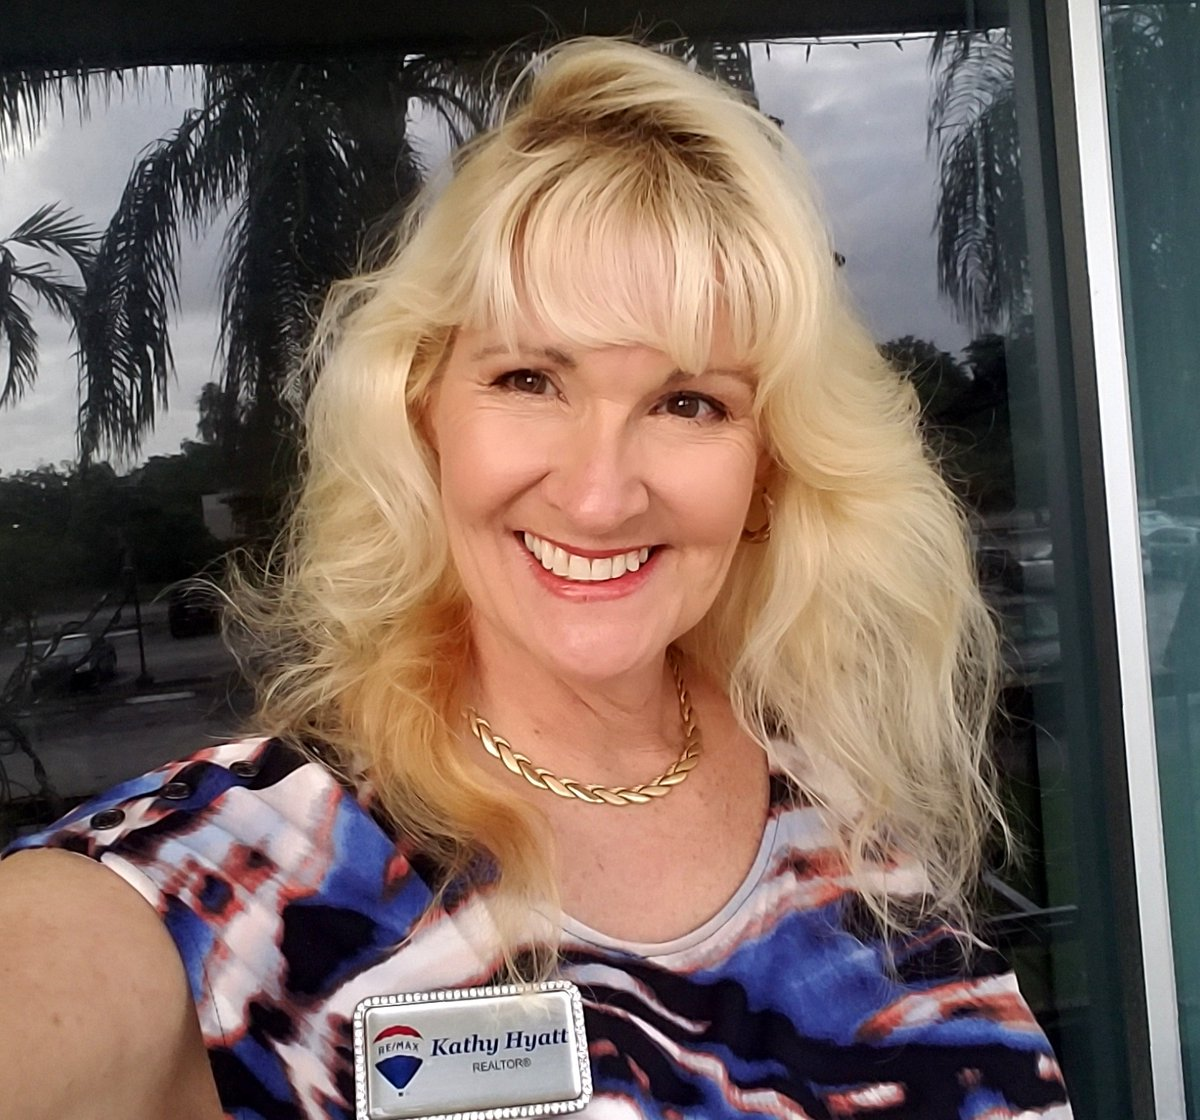 Hello and Happy Friday!!! How May I Help You Today? I Love Helping People Buy and Sell Homes, Reach out to me at 954-347-0244. http://www.HyattRealtors.com   #RemaxKat #RealEstateKat #RockStarRealtor #KathyHyatt #KathyHyattRocks #SellingSouthFlorida #SellingPlantationpic.twitter.com/h44MHzltrg